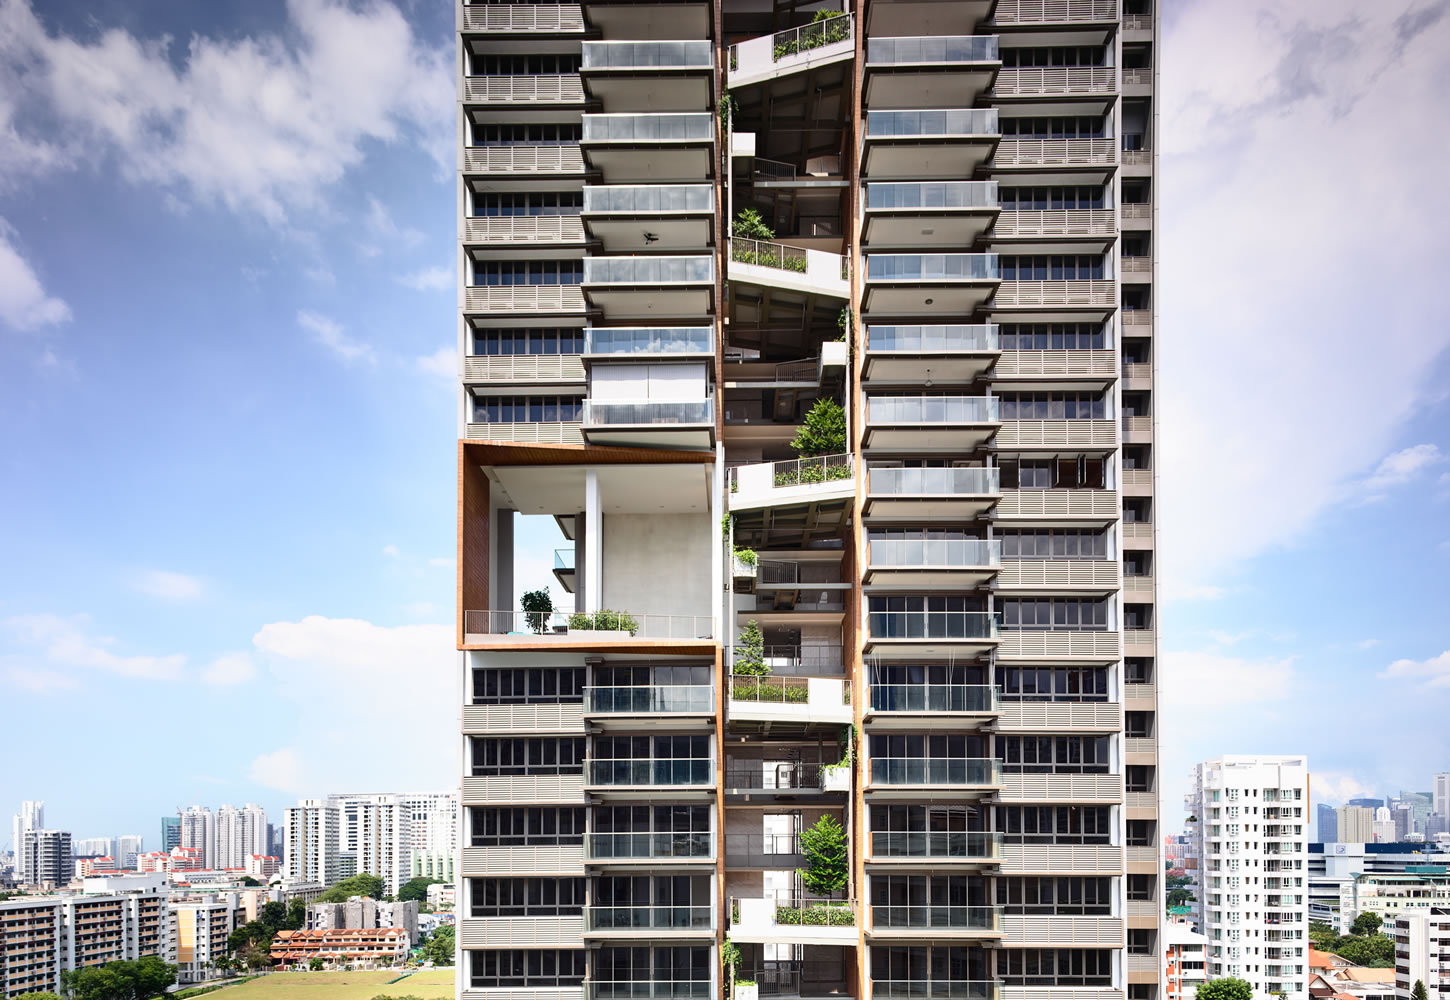 6 Derbyshire Road Apartments, S'pore